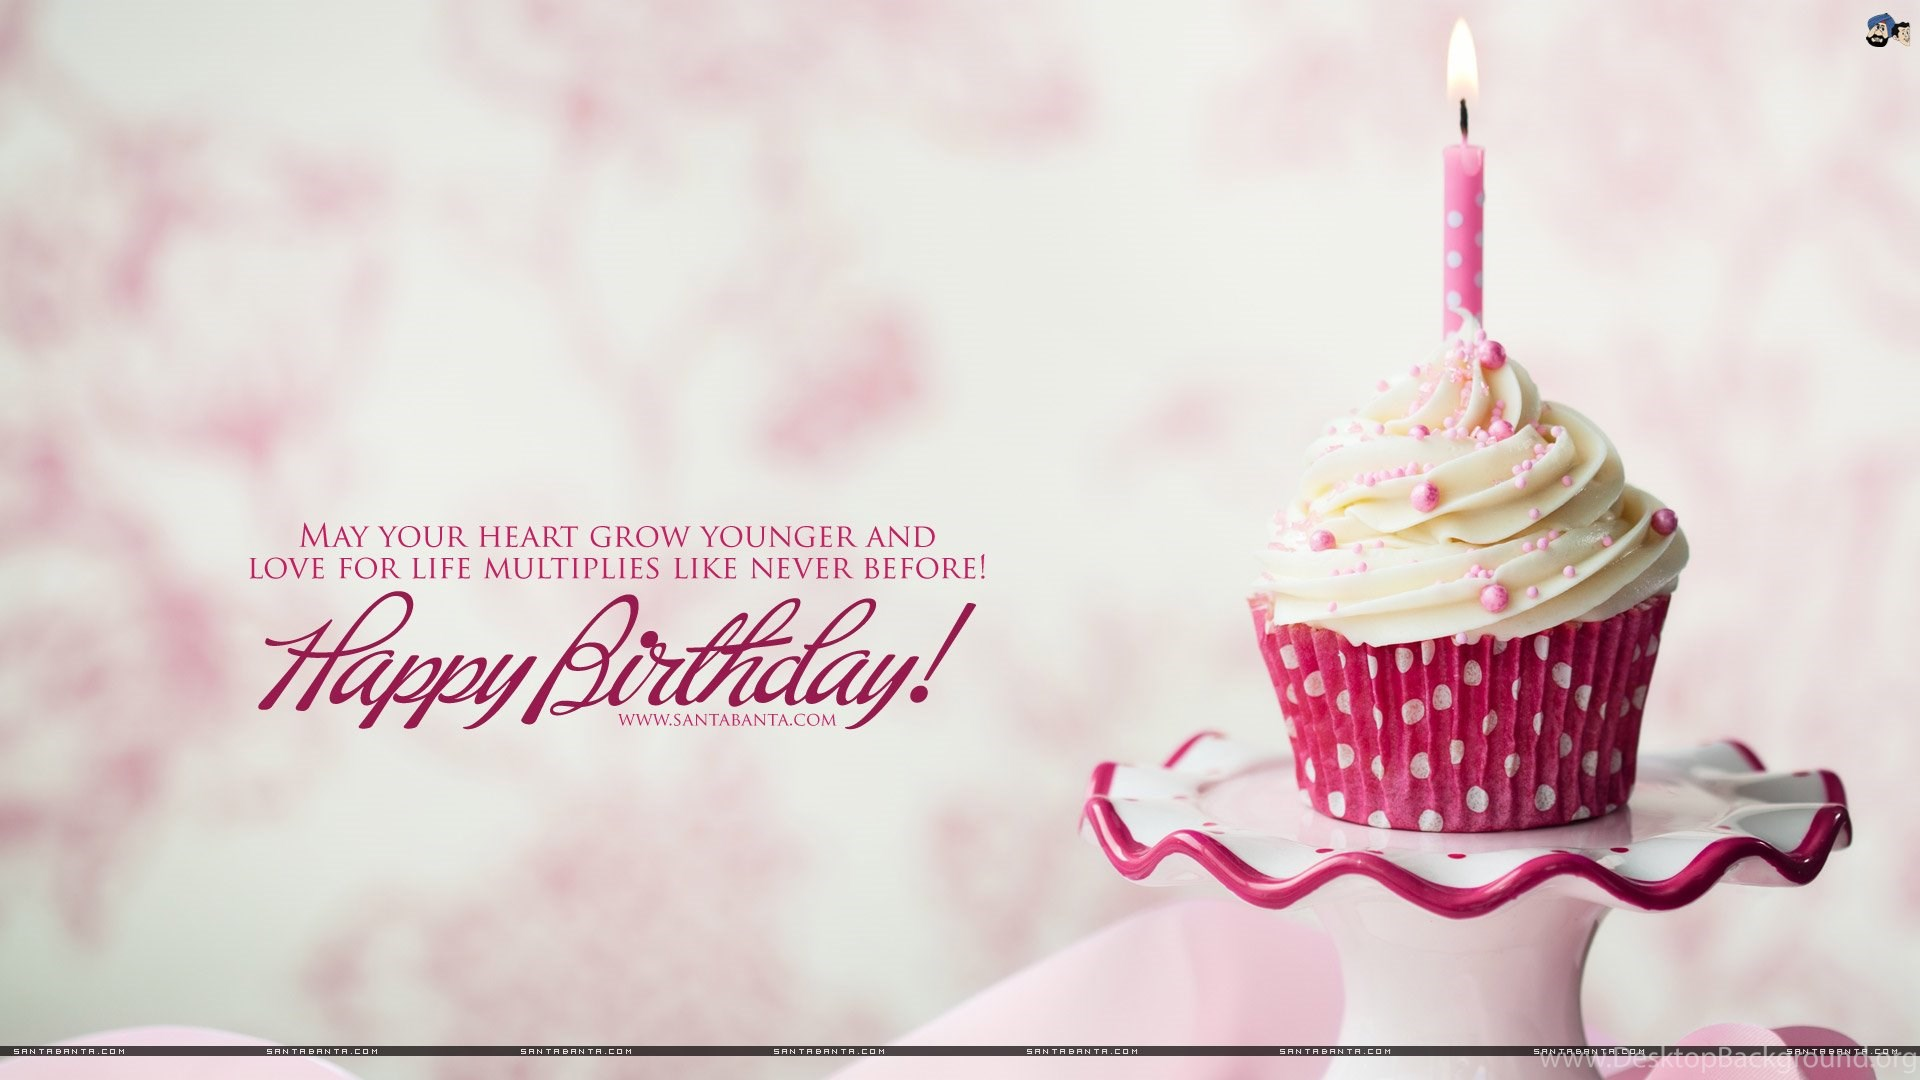 Happy Birthday Wallpapers Hd Cutewallpaper Desktop Background